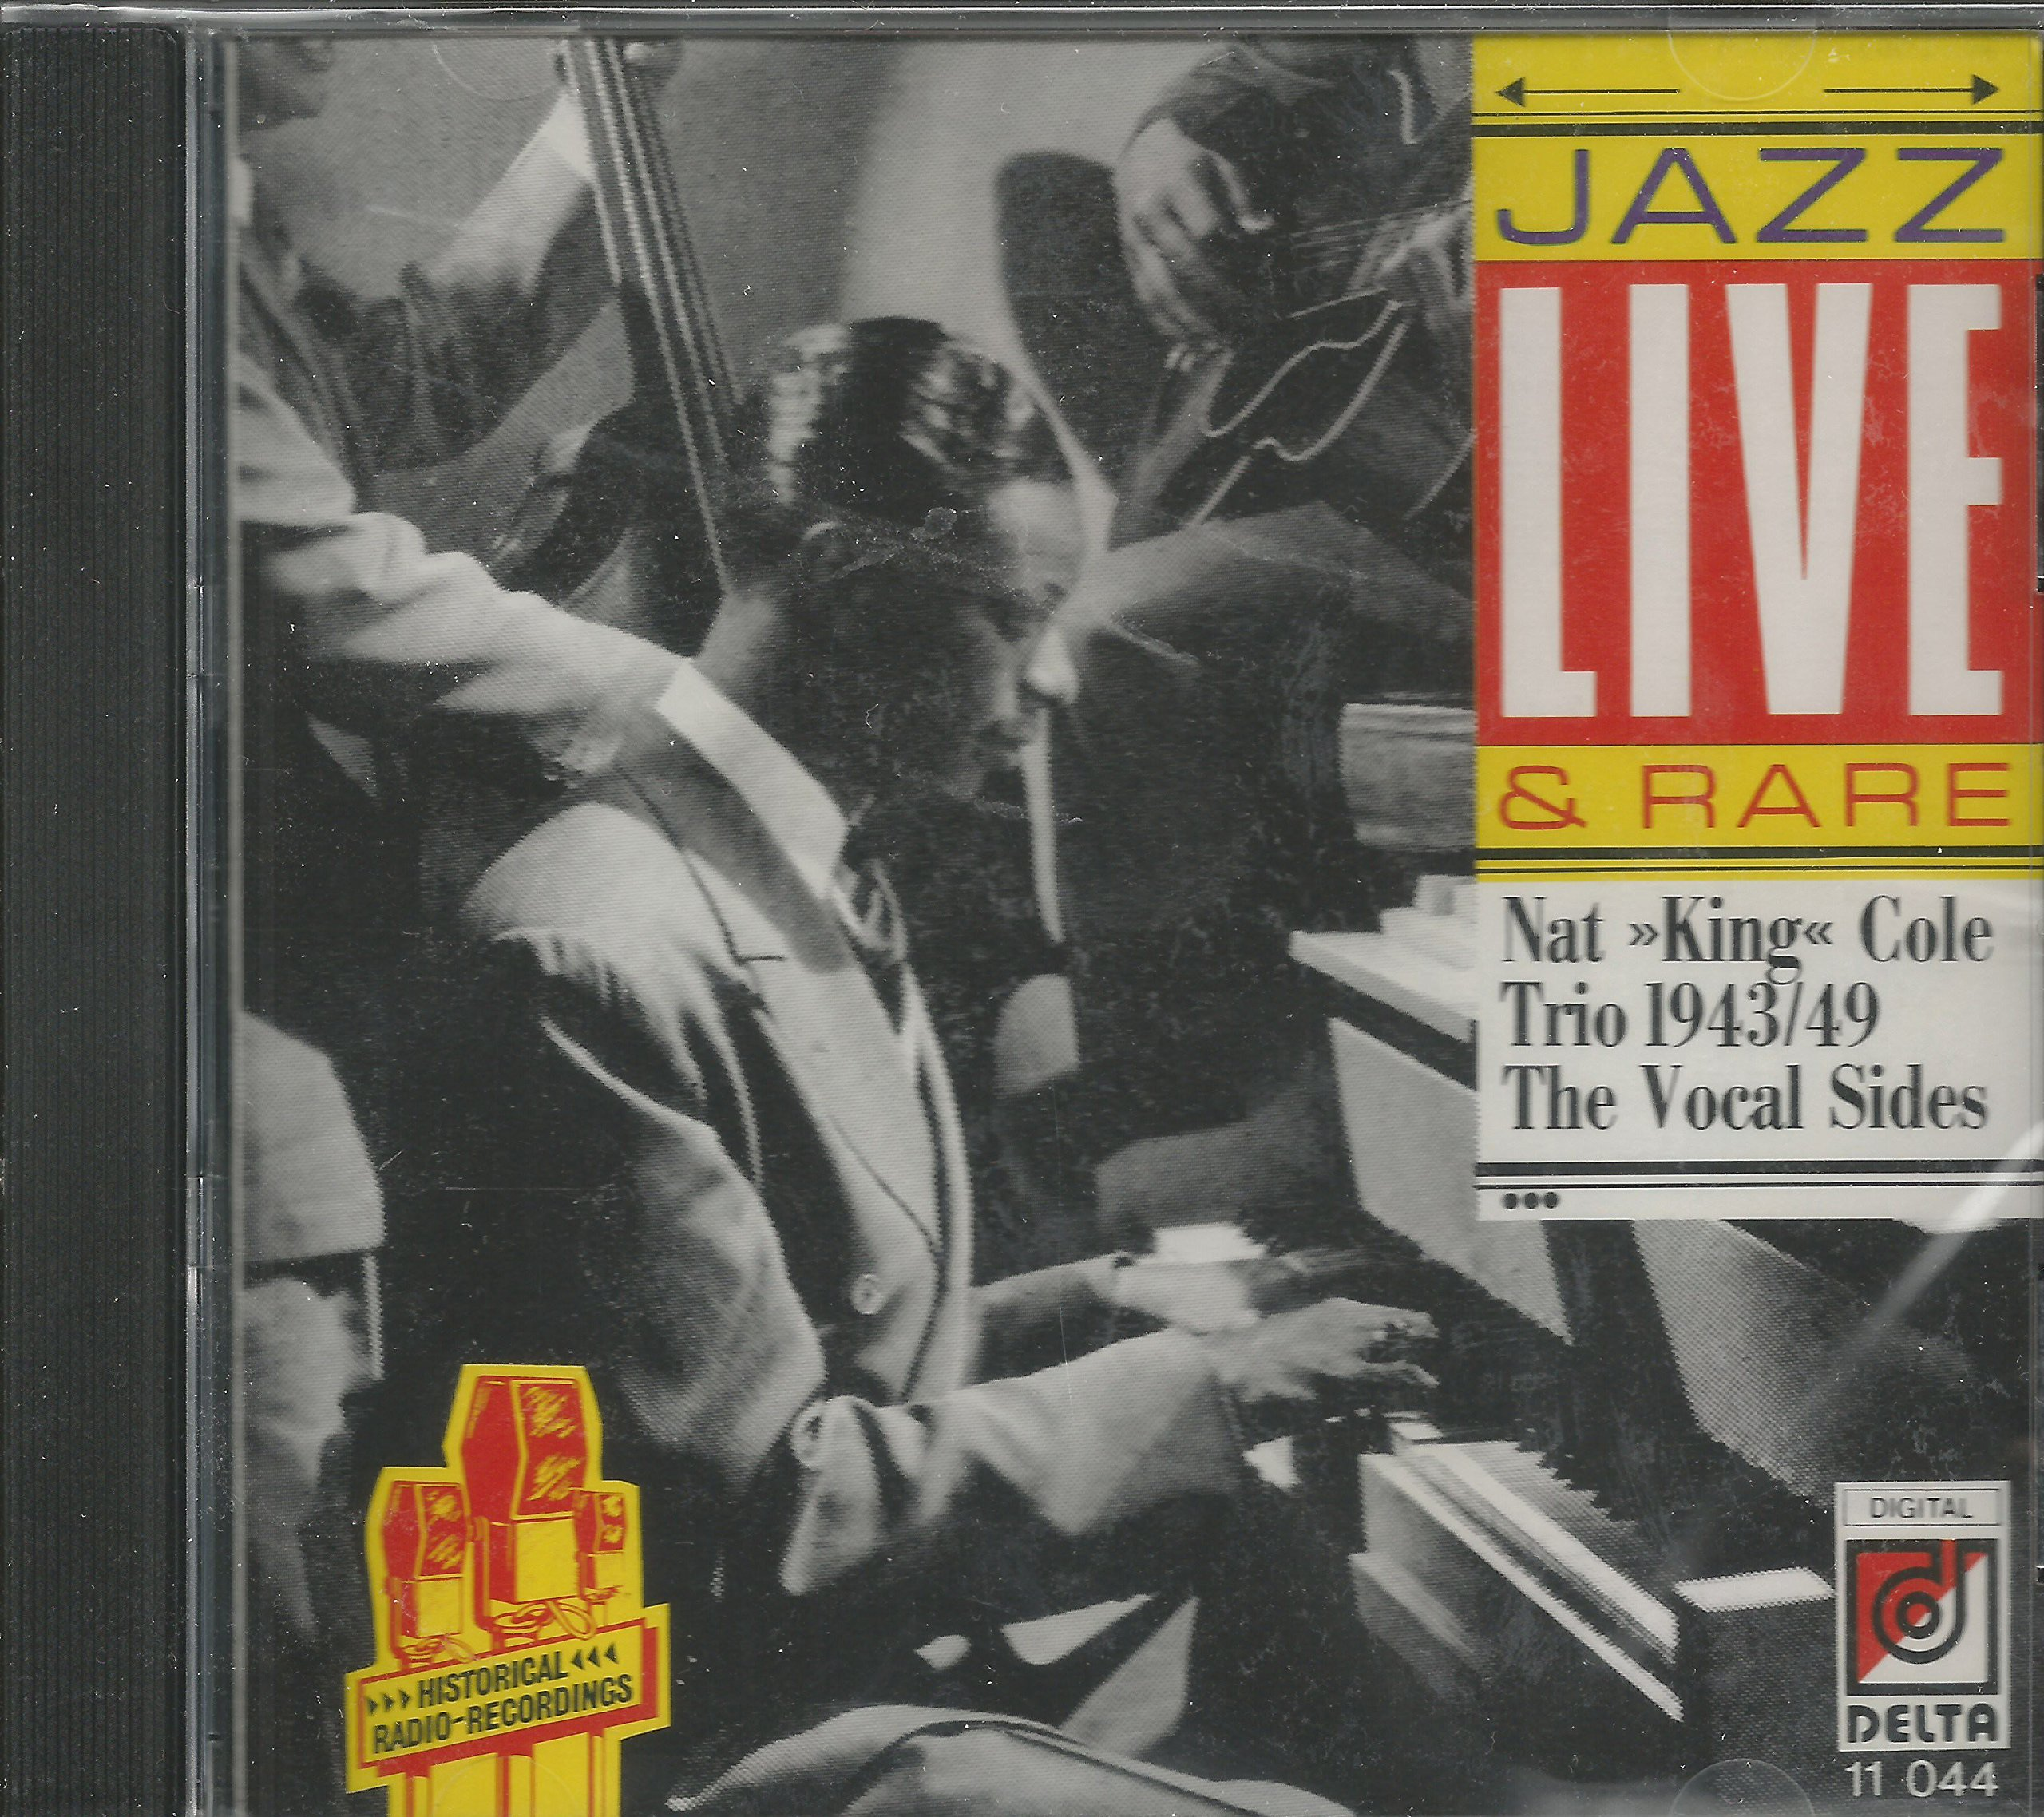 Jazz Live & Rare: Nat ''King'' Cole Trio 1943/49 The Vocal Sides